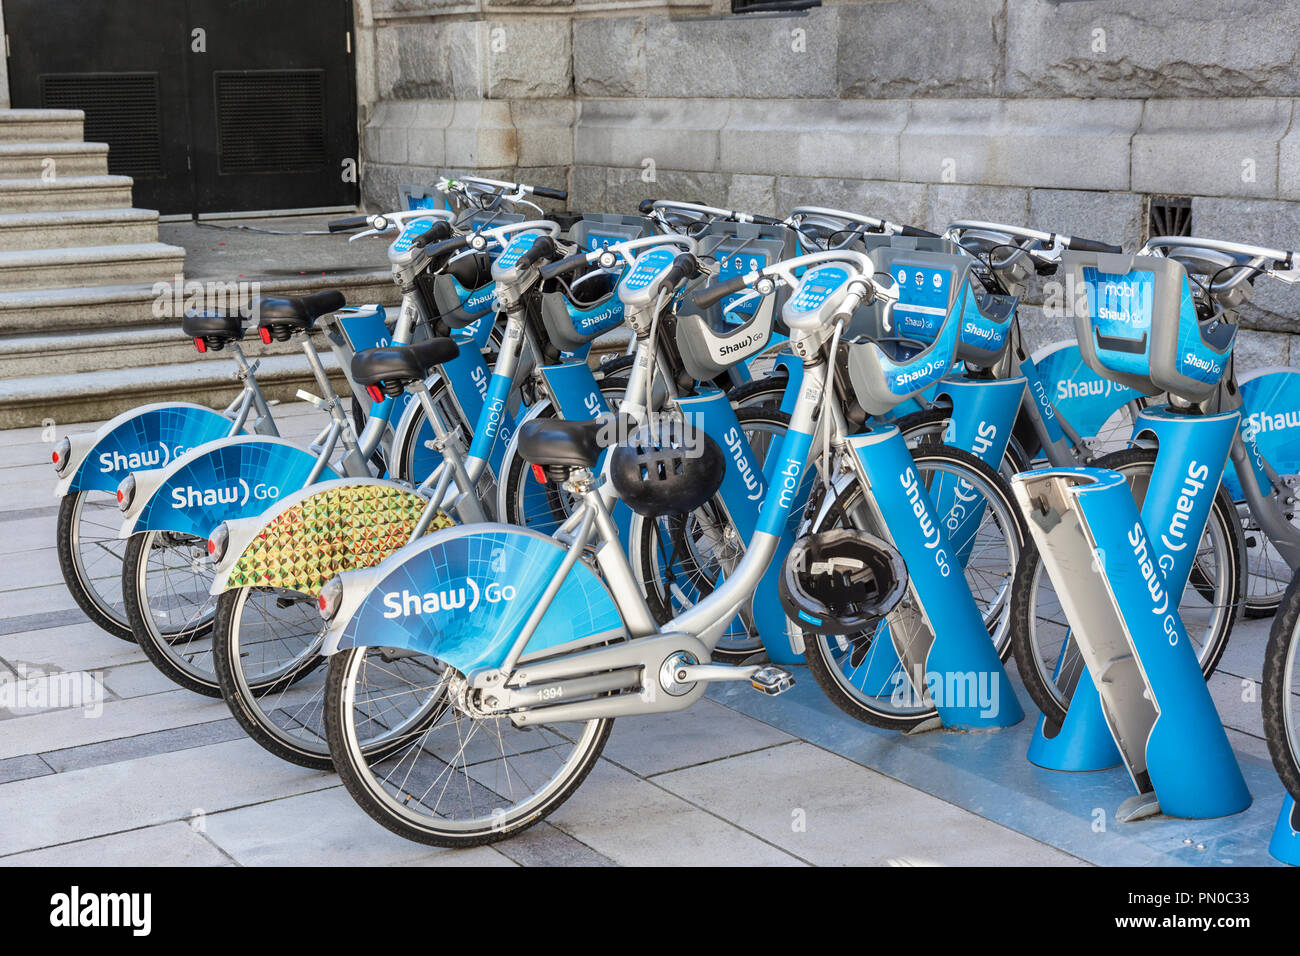 Mobi Shaw Go Bike share scheme in downtown Vancouver, British Columbia, Canada - Stock Image